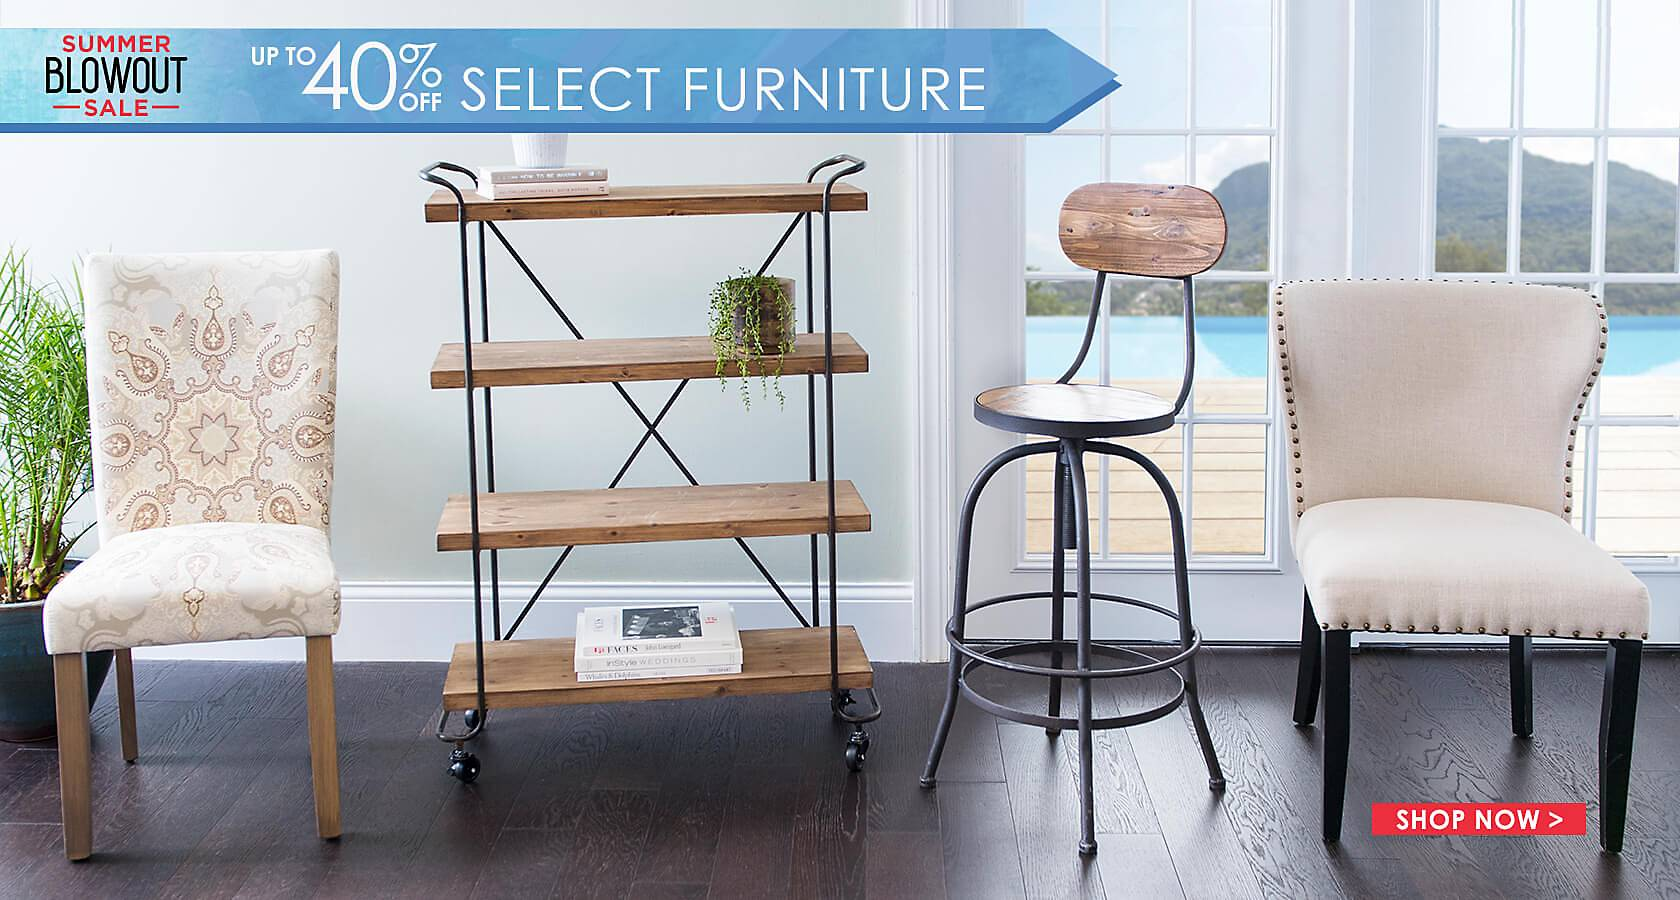 Furniture Blow Out - Up to 40% Off Select Styles - Shop Now